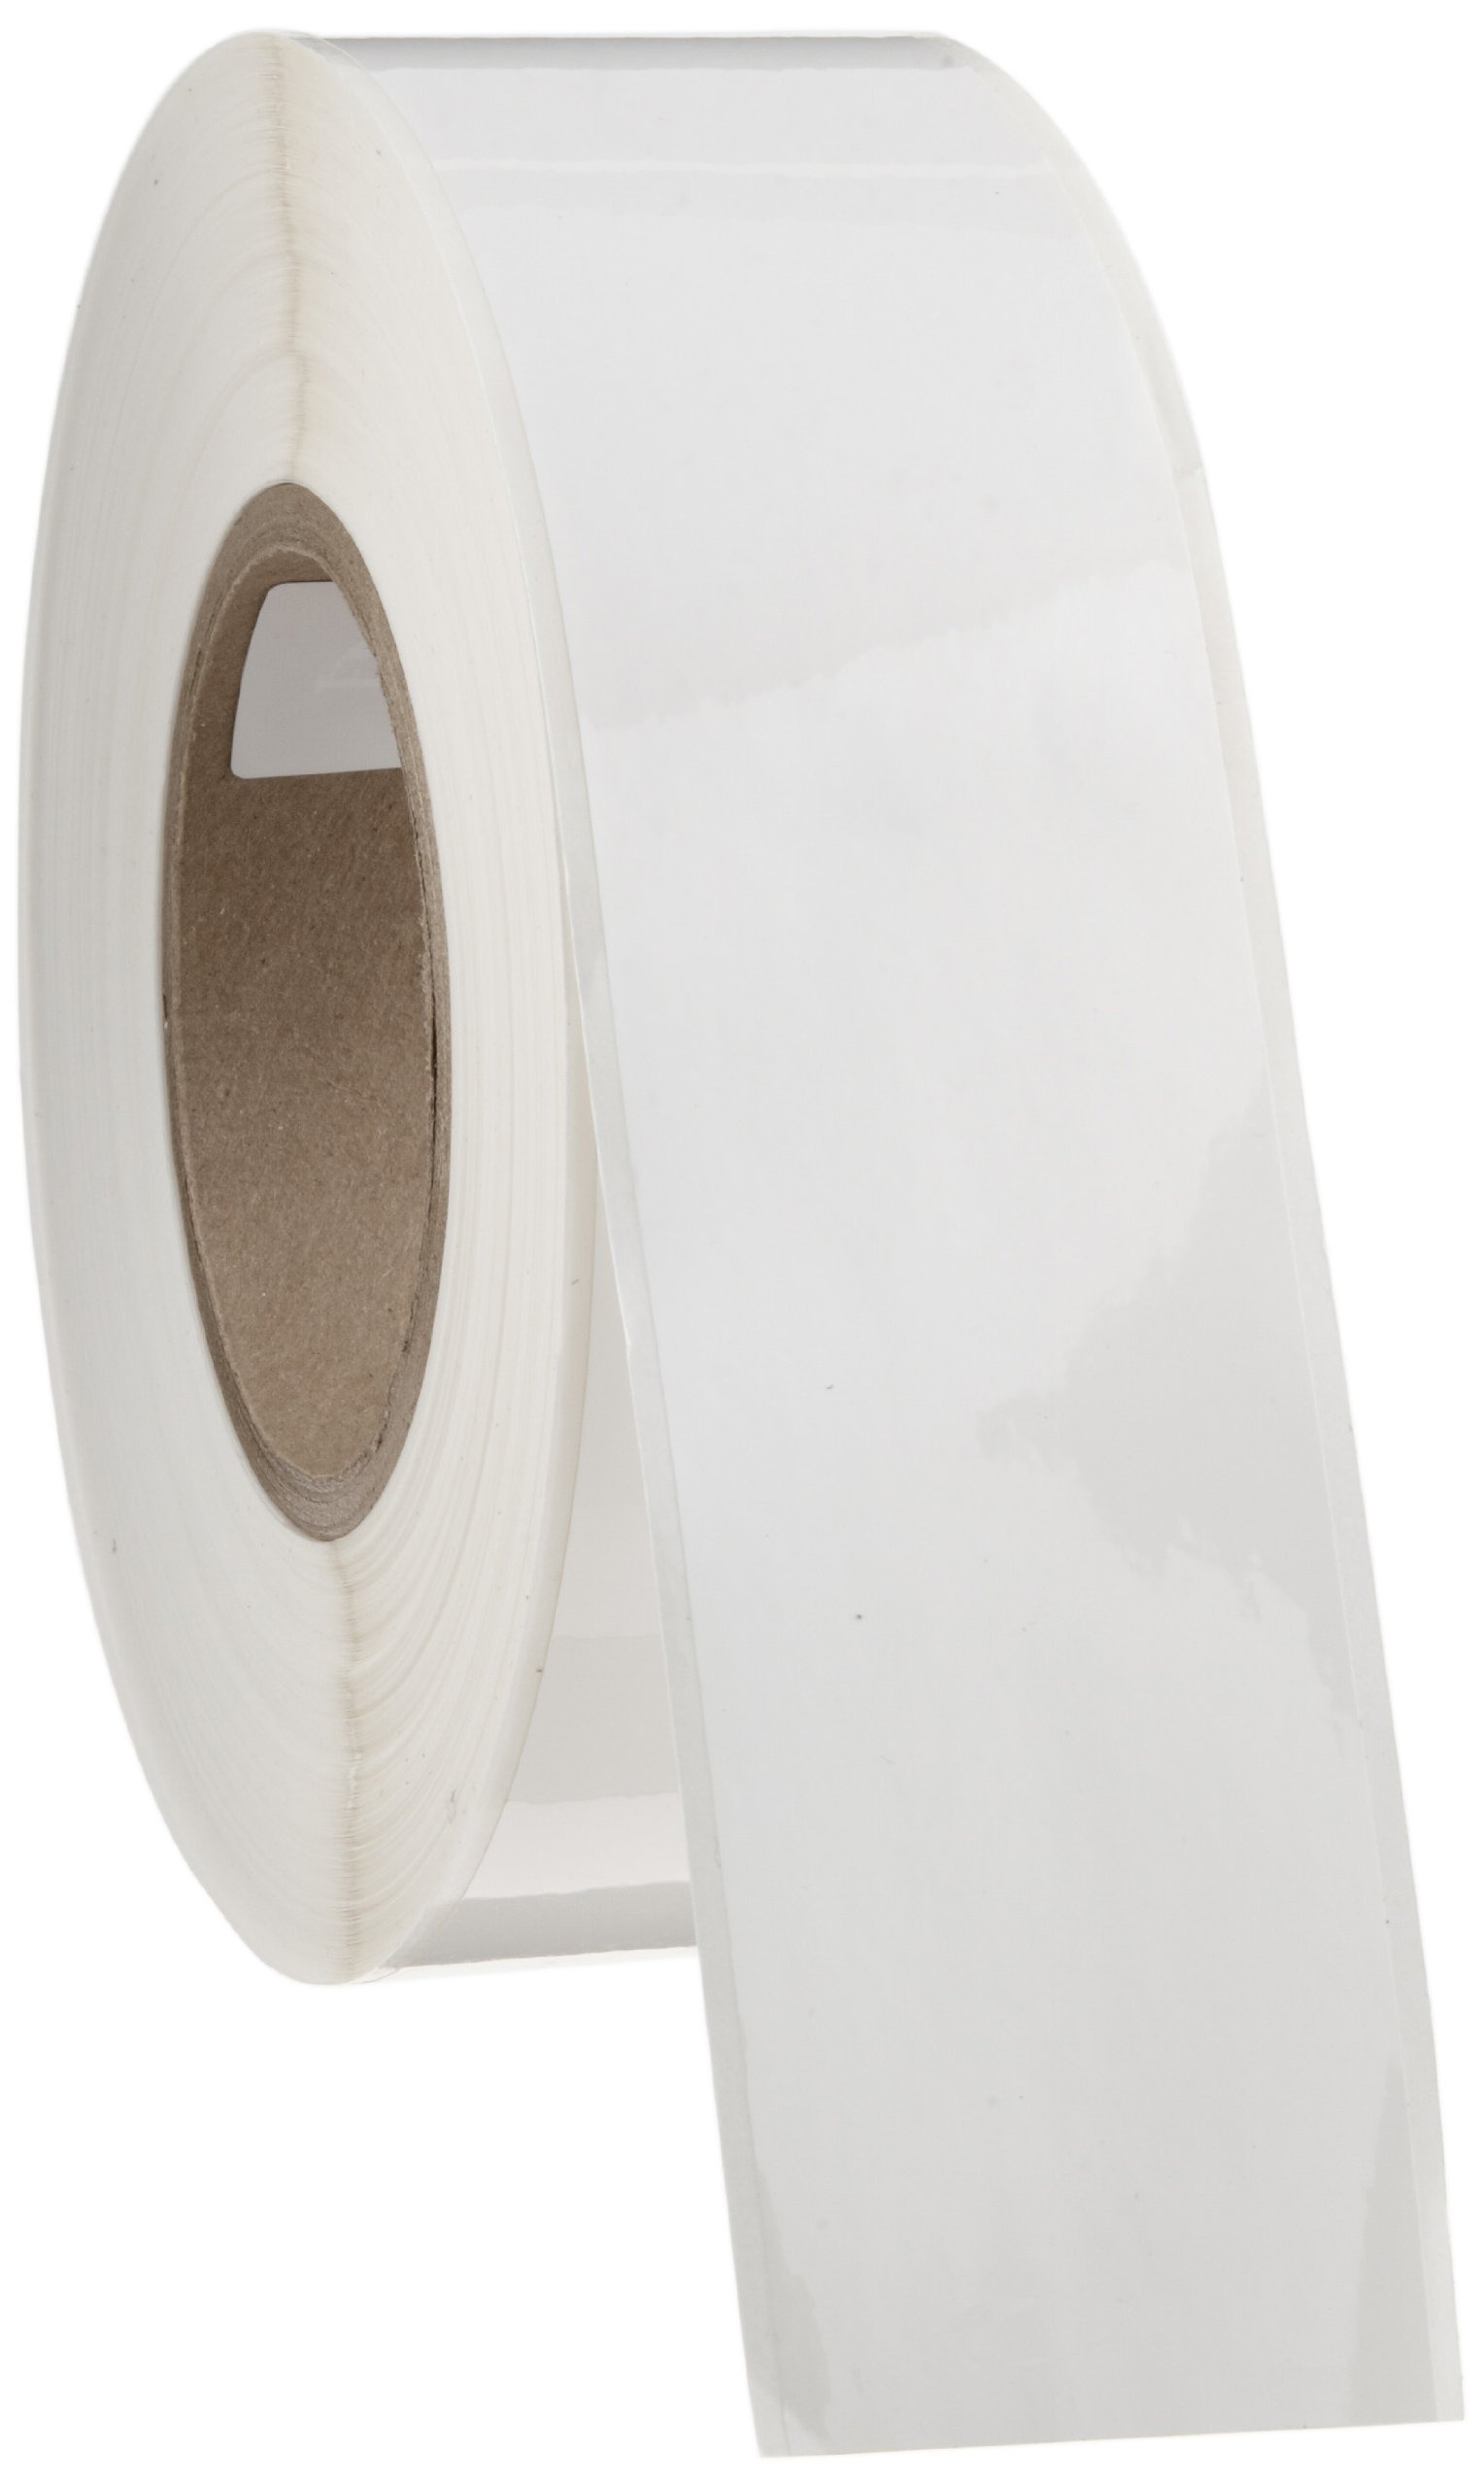 Brady THT-106-423 2'' Width x 300' Height, B-423 Permanent Polyester, Gloss Finish White Thermal Transfer Printable Label by Brady